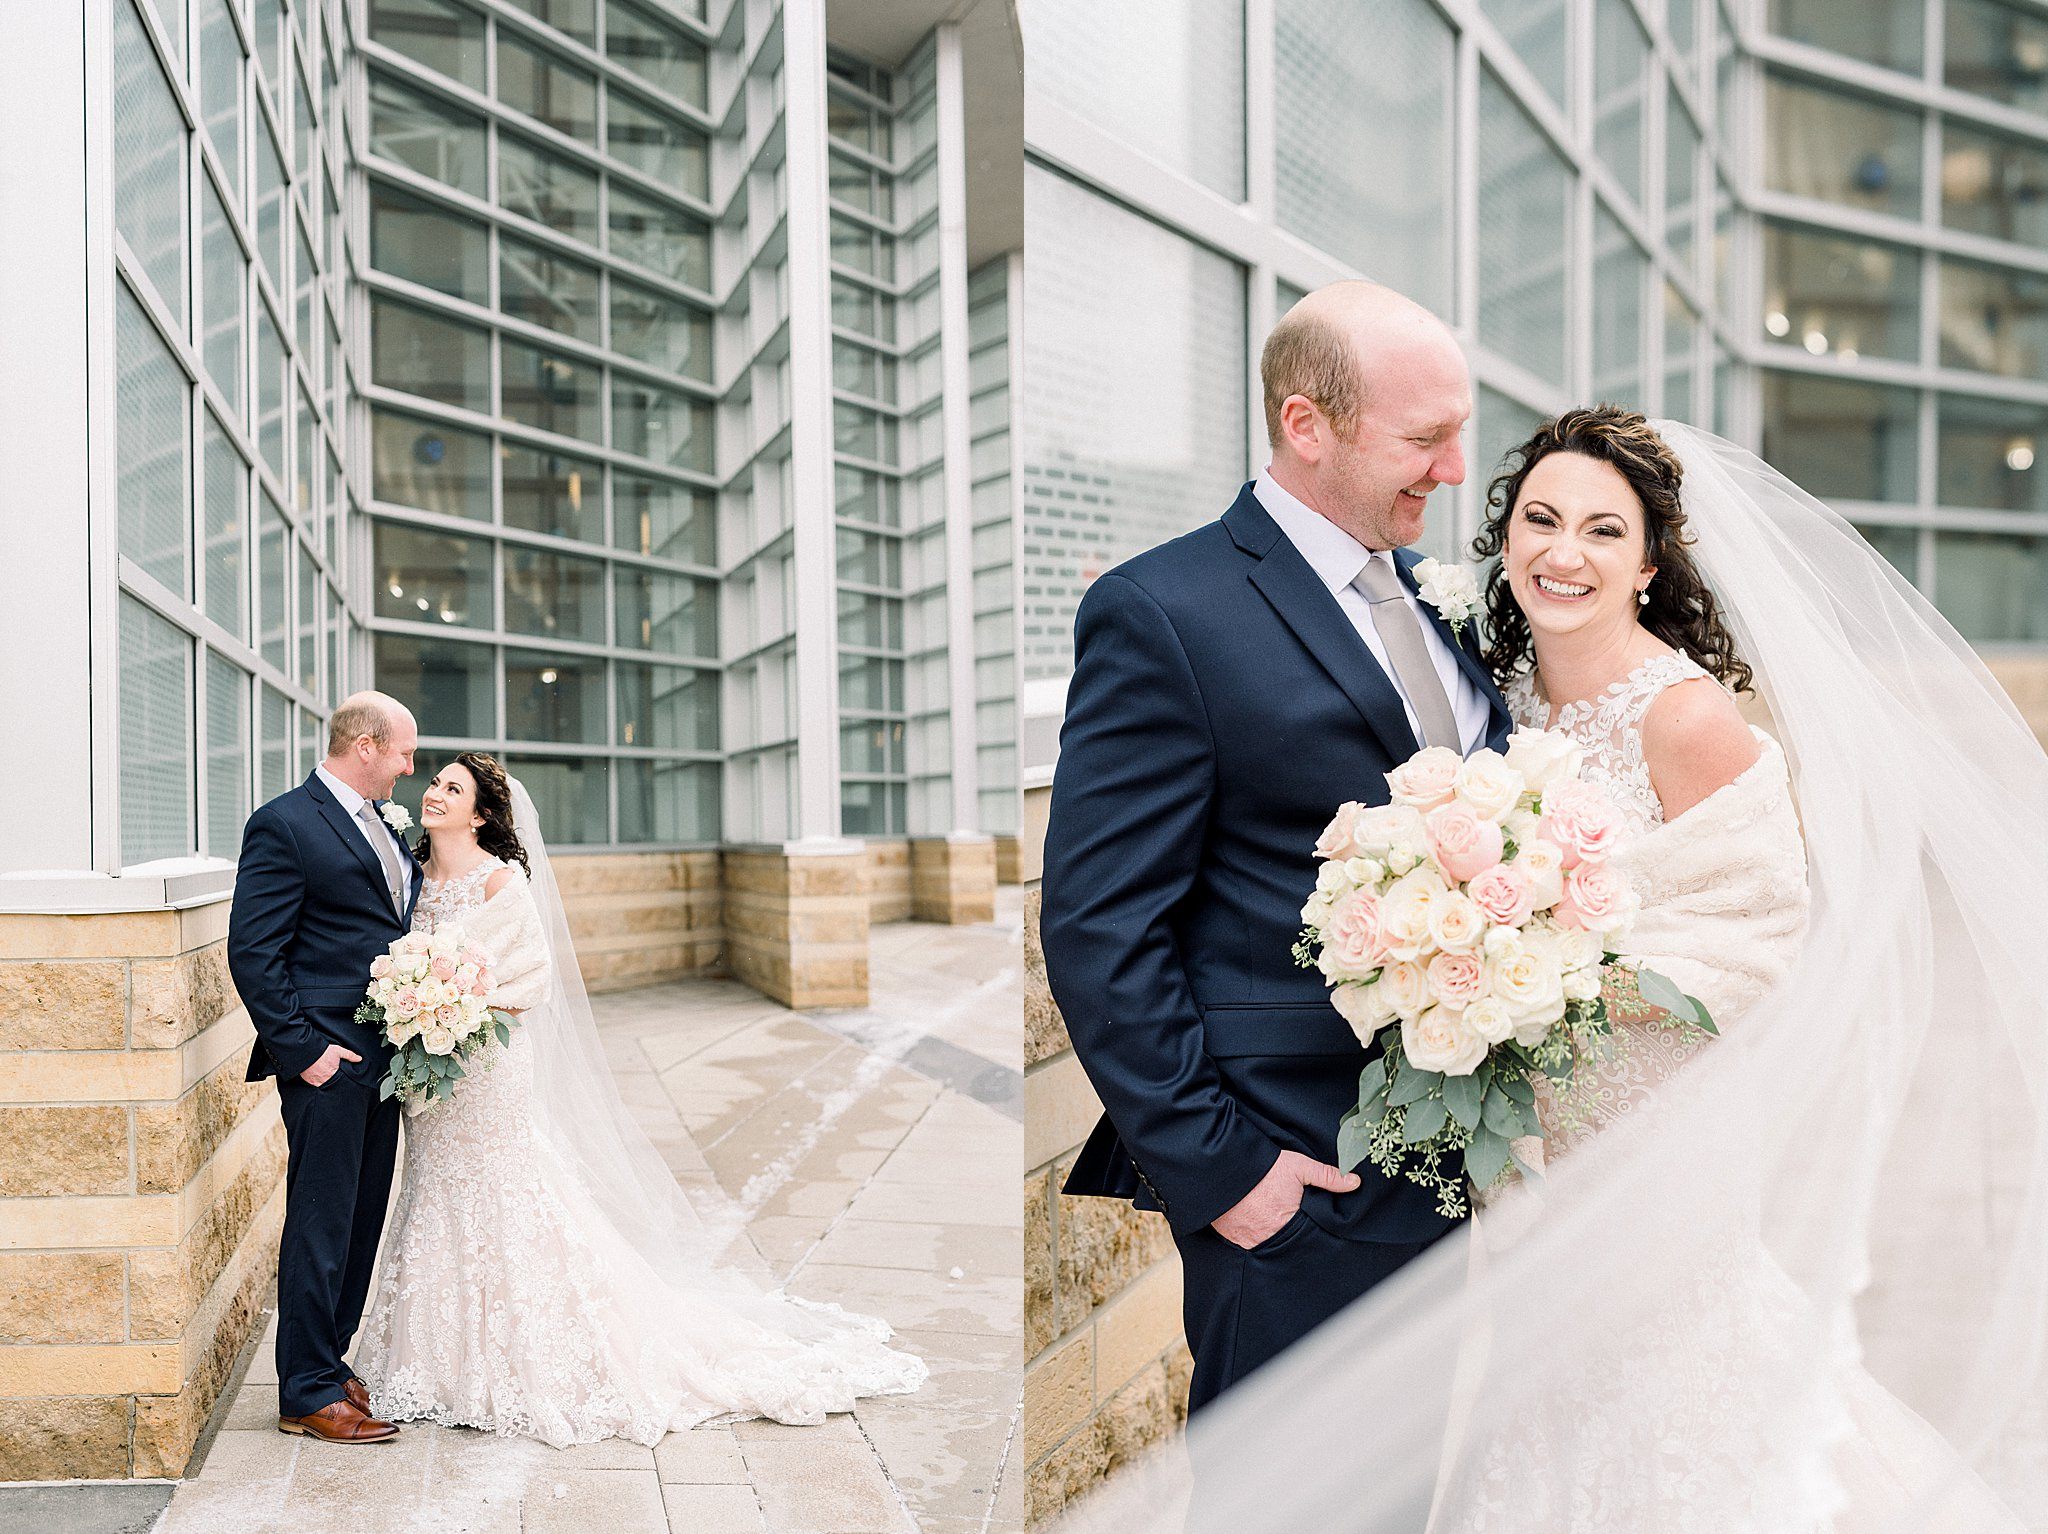 Courtyard by Marriott wedding